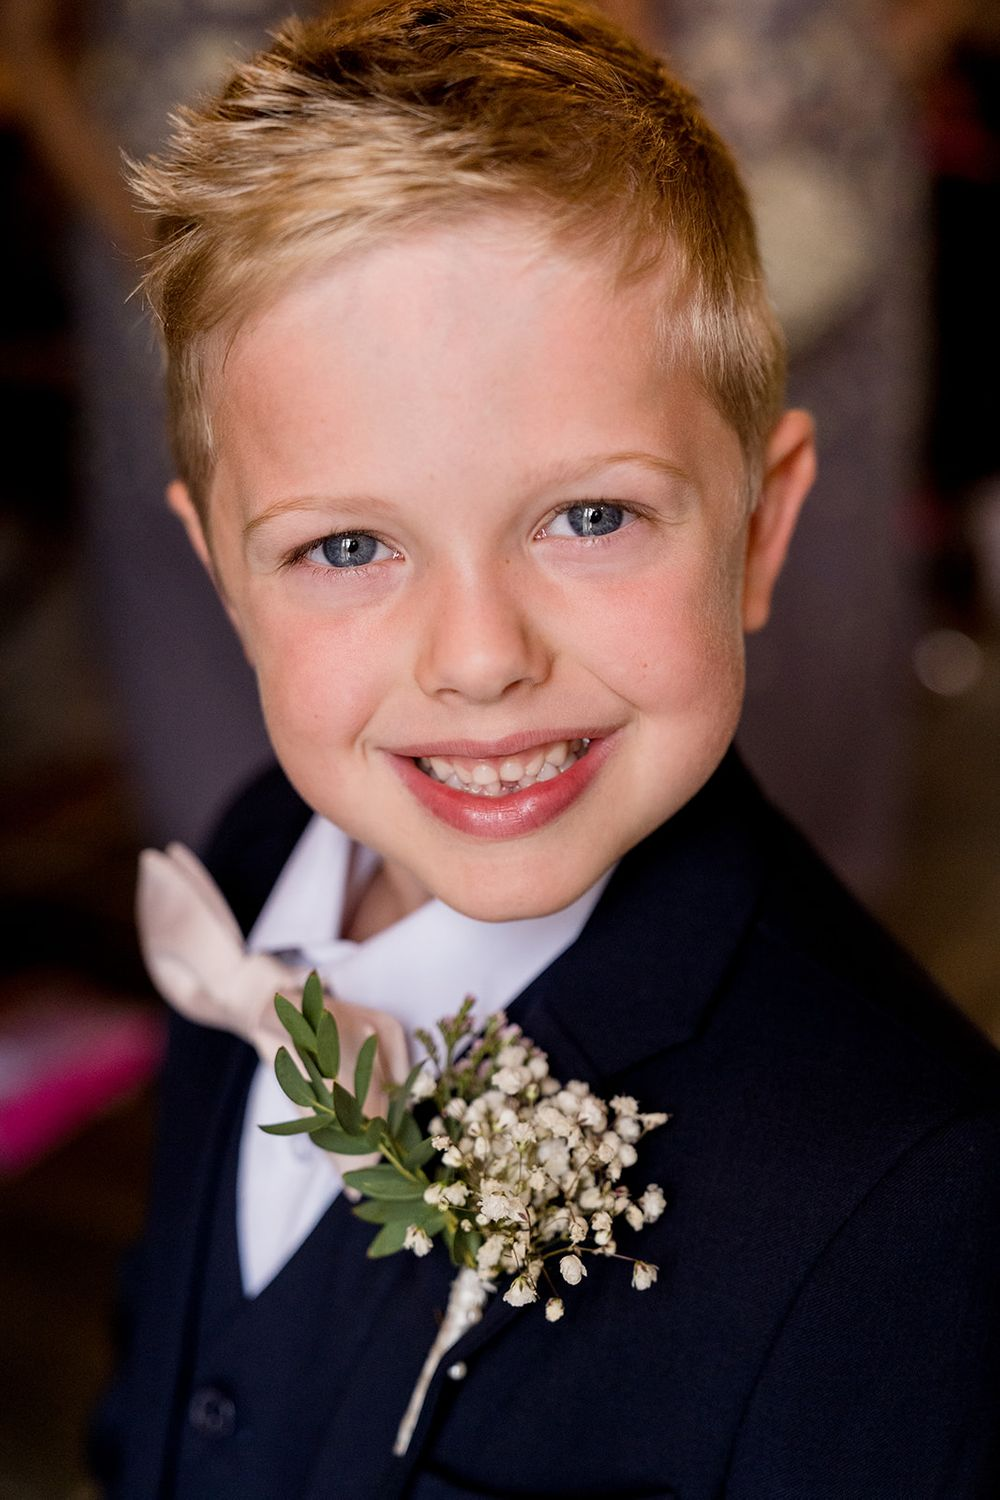 ring bearer with pink bow tie